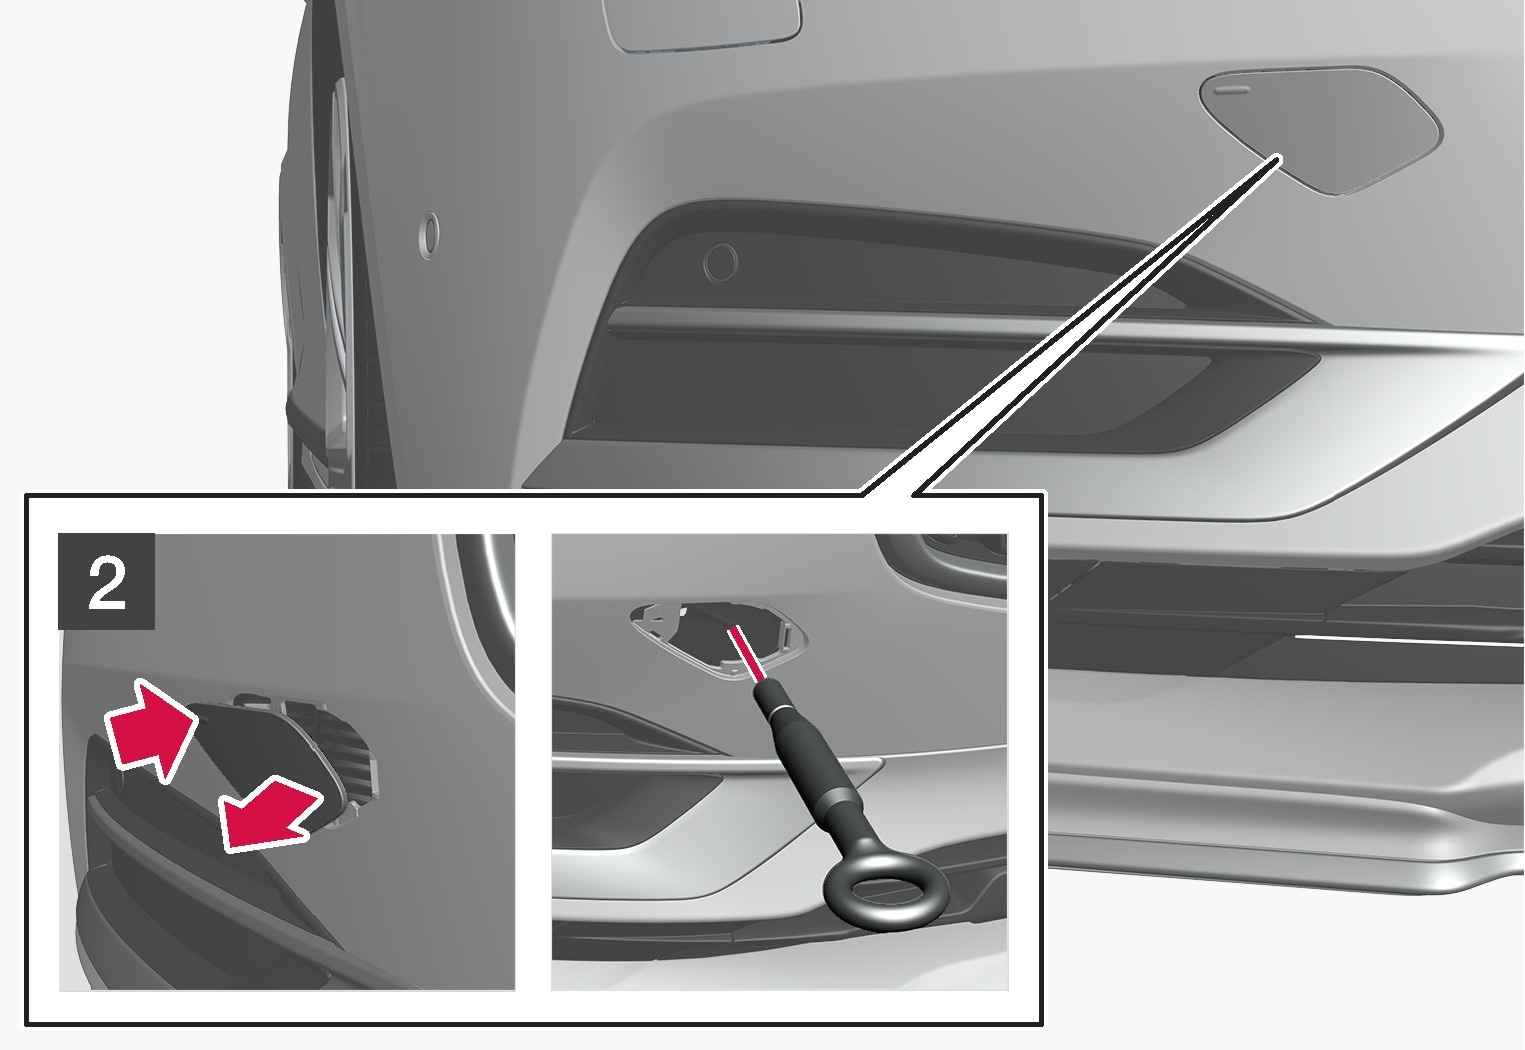 P5-1617-S90-V90-towing eye fitting at front step 2